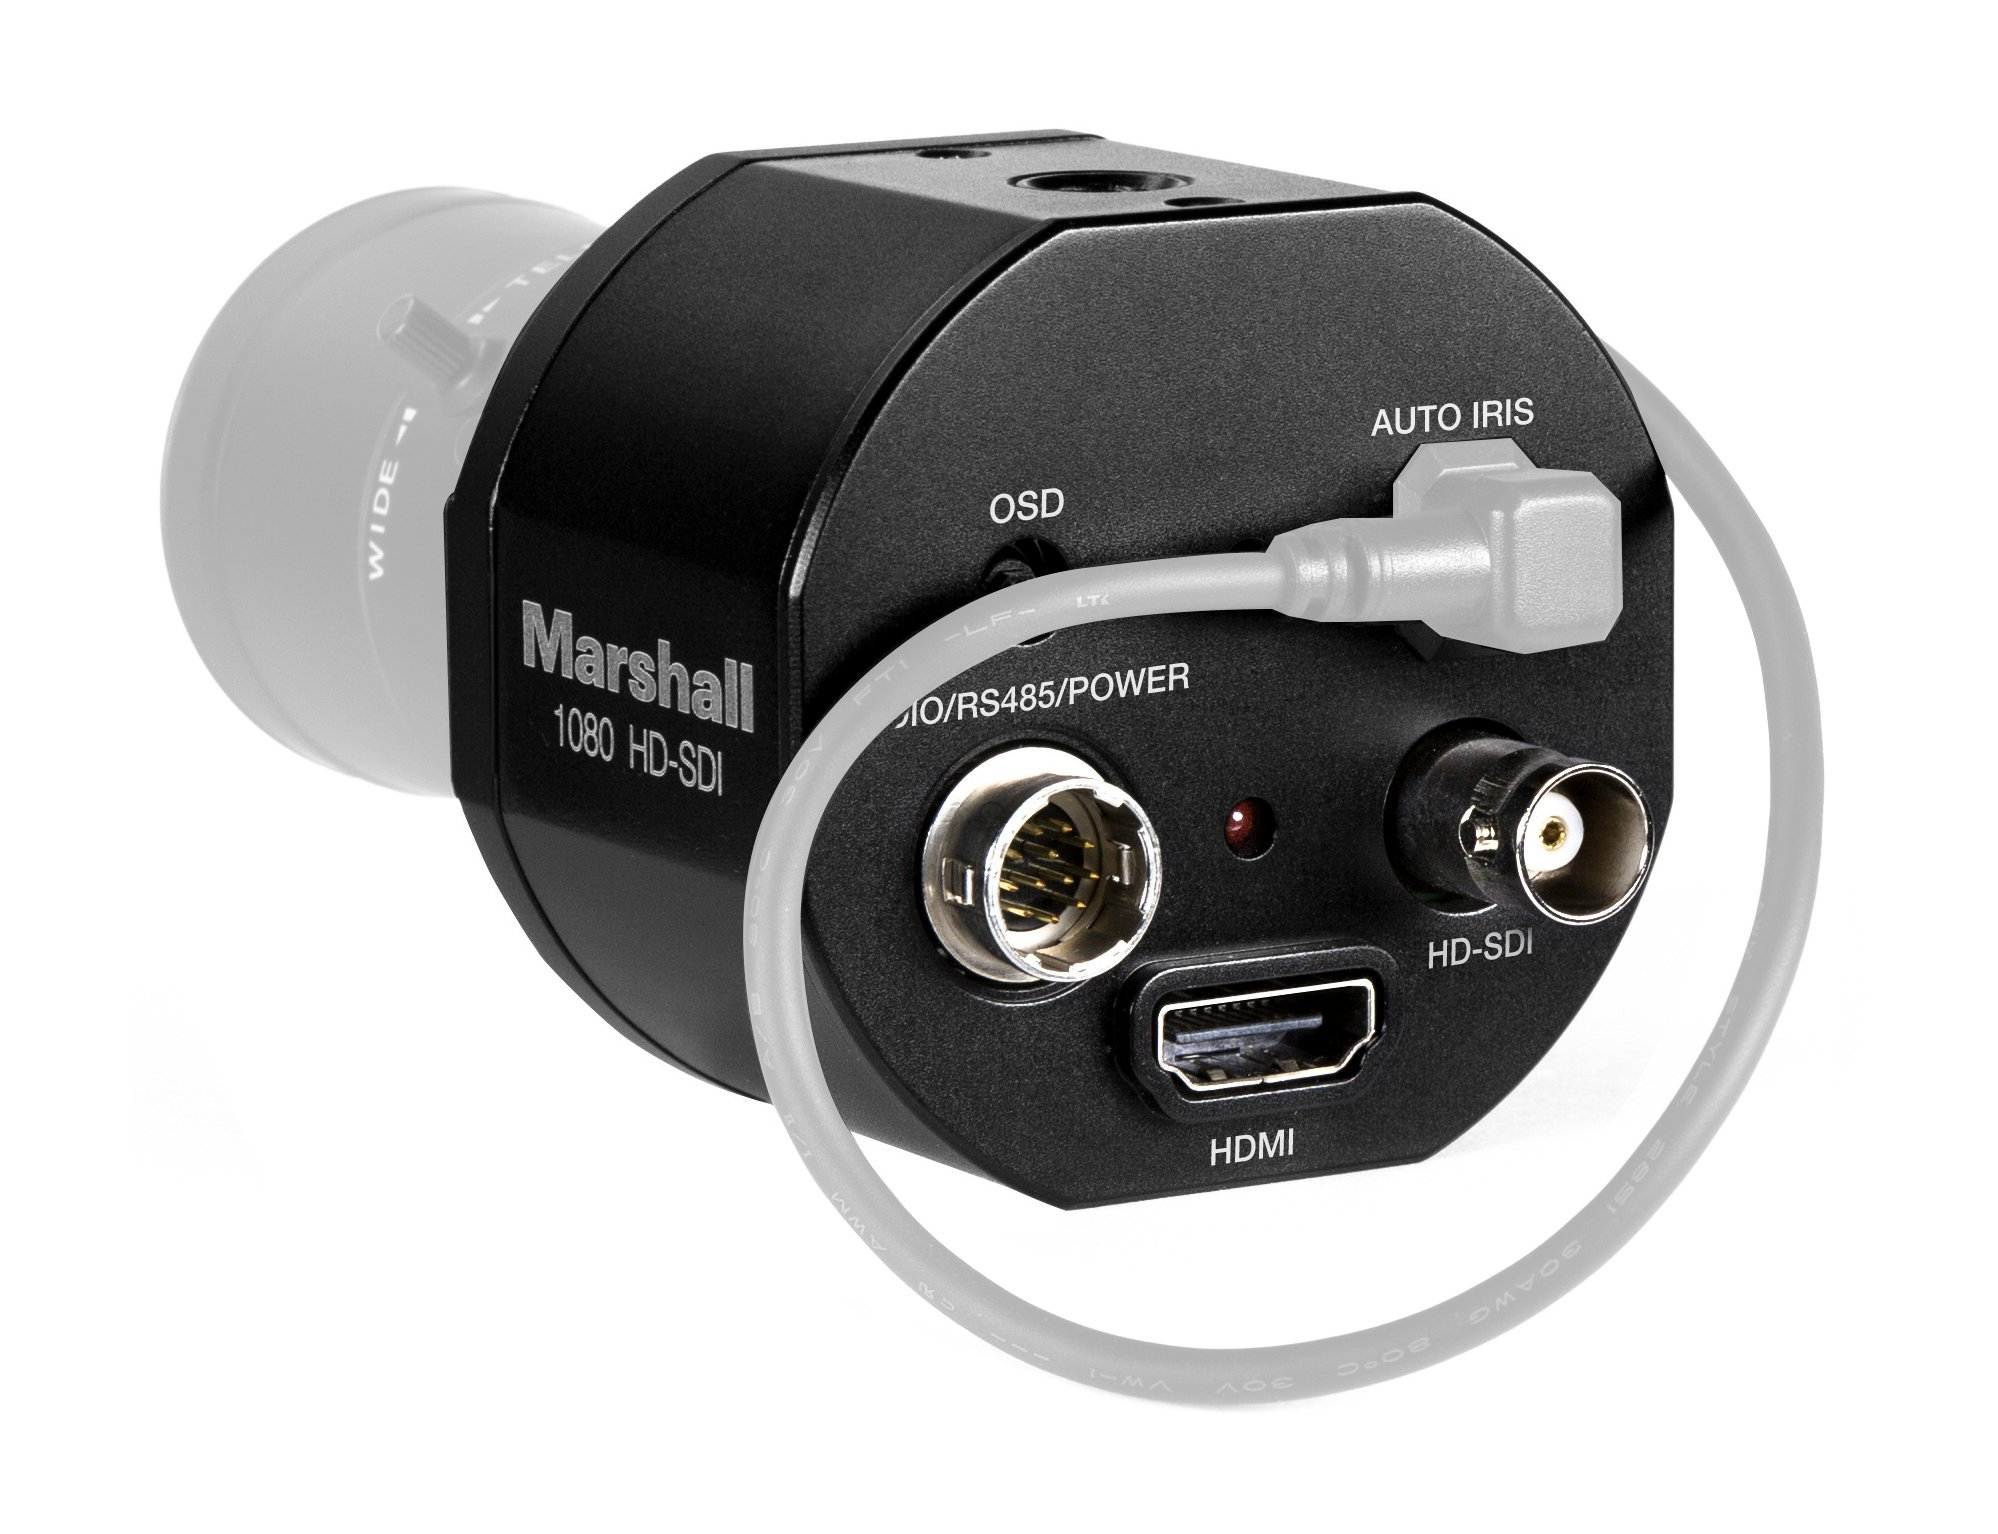 Compact 2Mp Full HD (3G/HD-SDI) Video (Non-Broadcast) Camera with HDMI Out